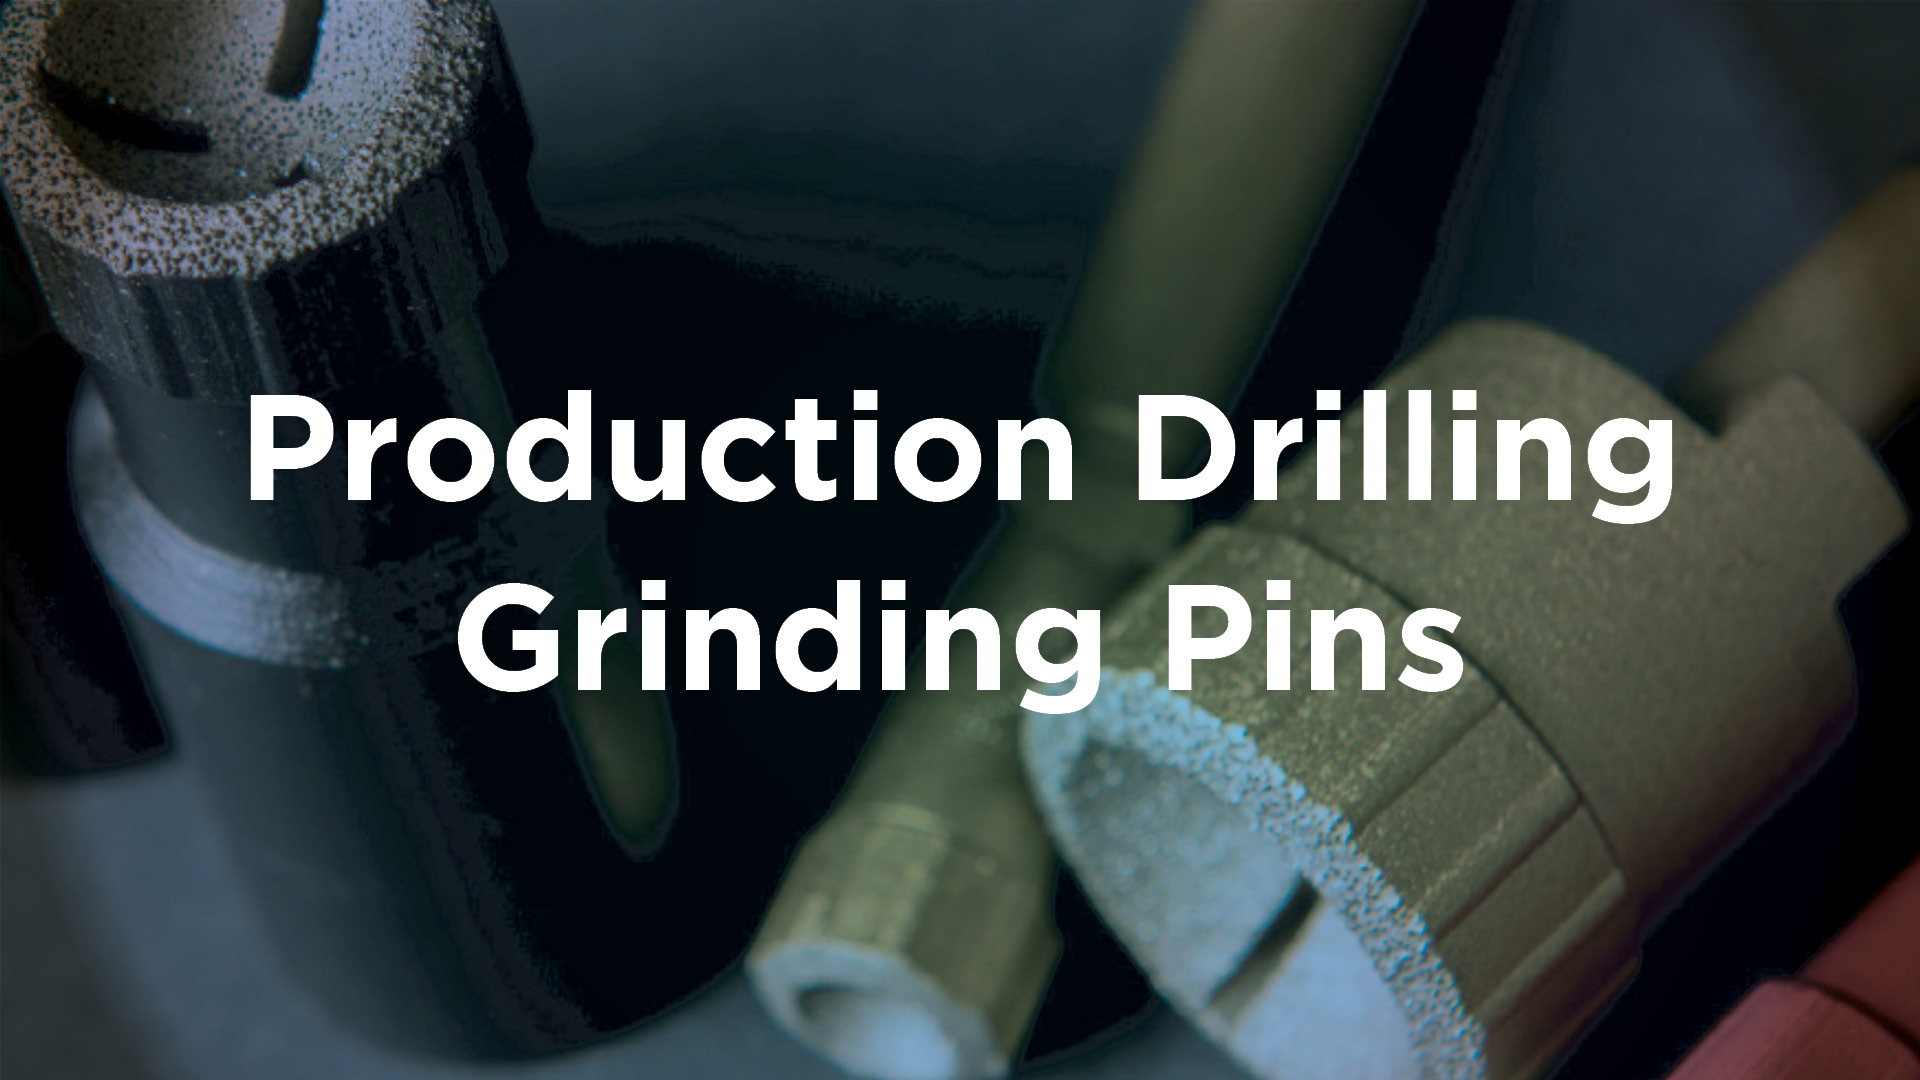 Production Drilling Grinding Pins